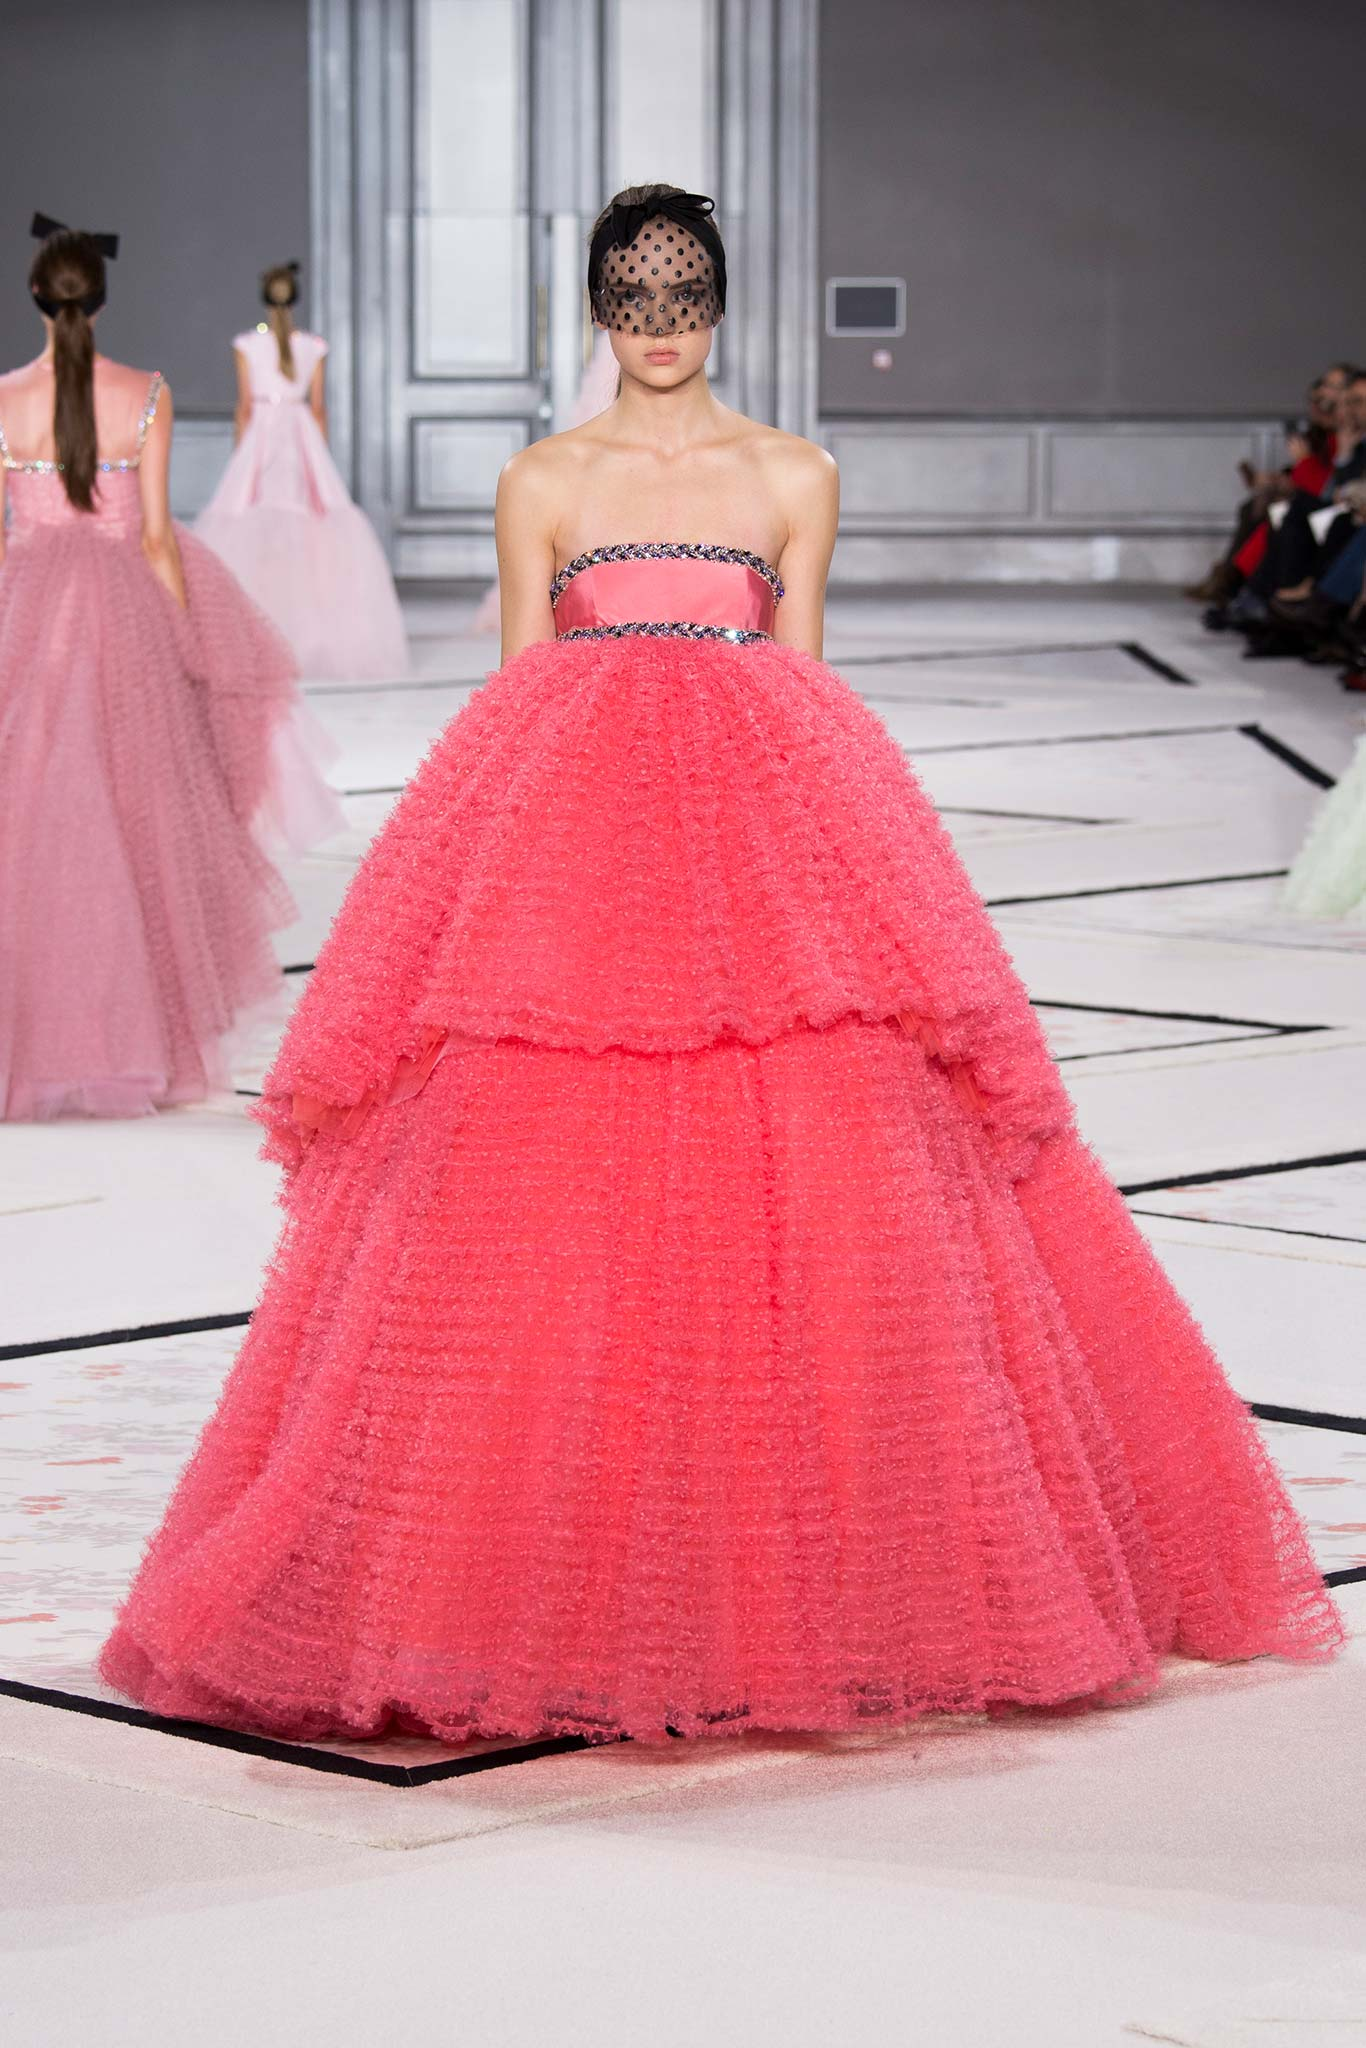 giambattista valli paris spring haute couture 2015